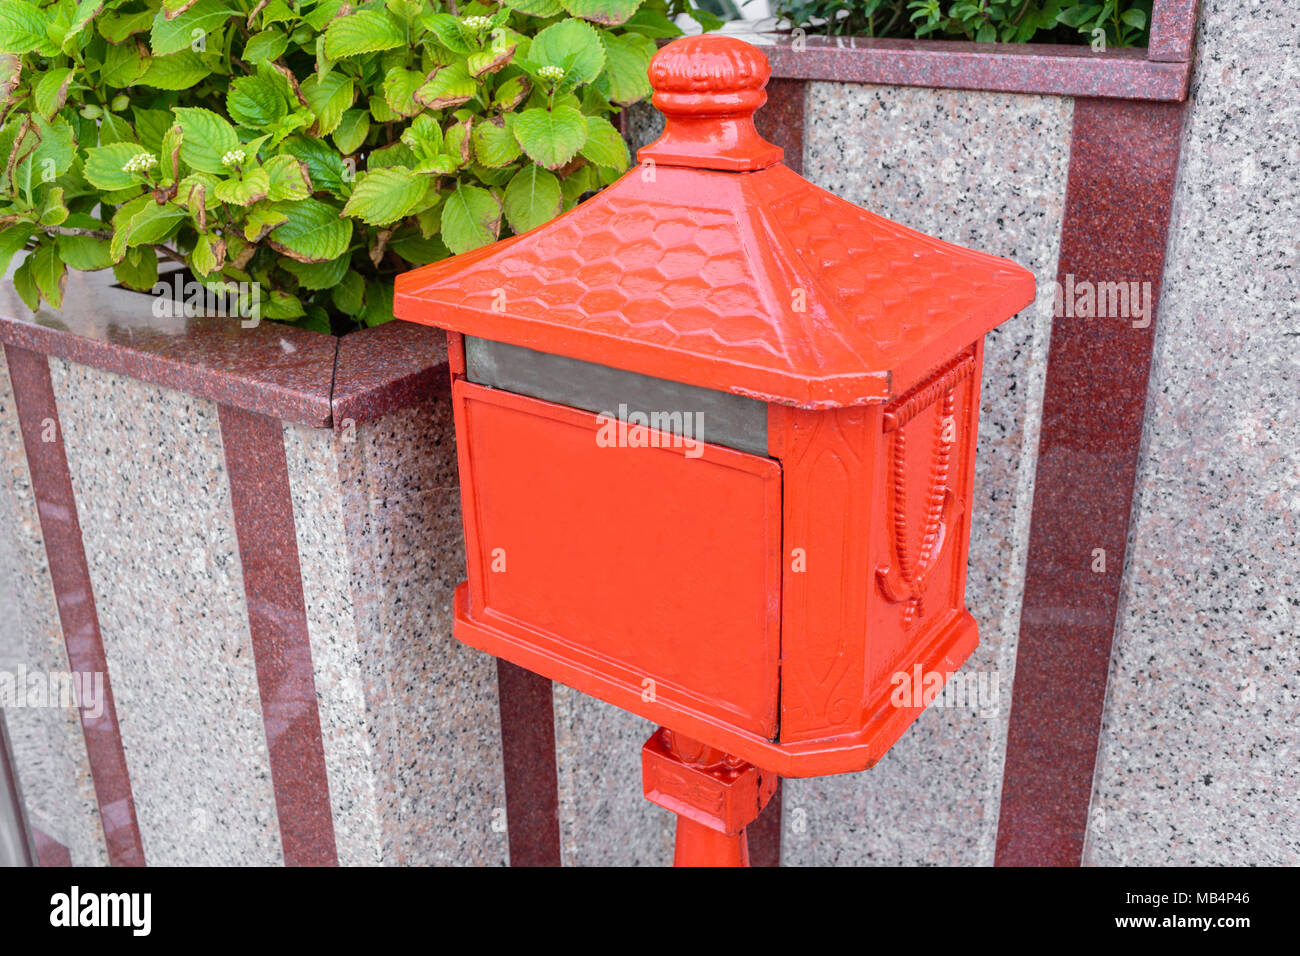 An old home letter box, red painted. Italy - Stock Image